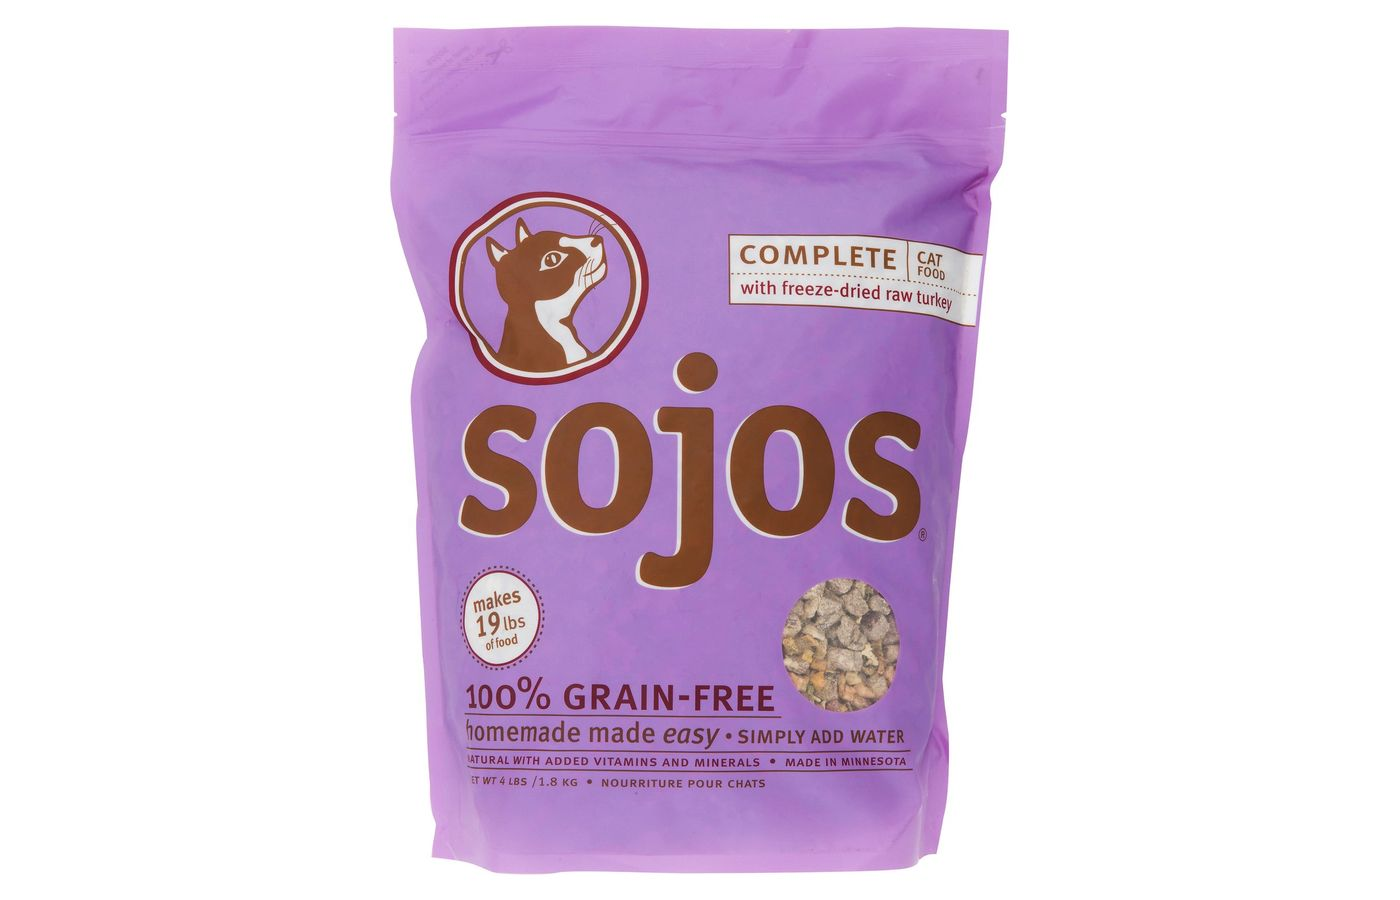 Sojos Complete Turkey Grain-Free Freeze-Dried Cat Food